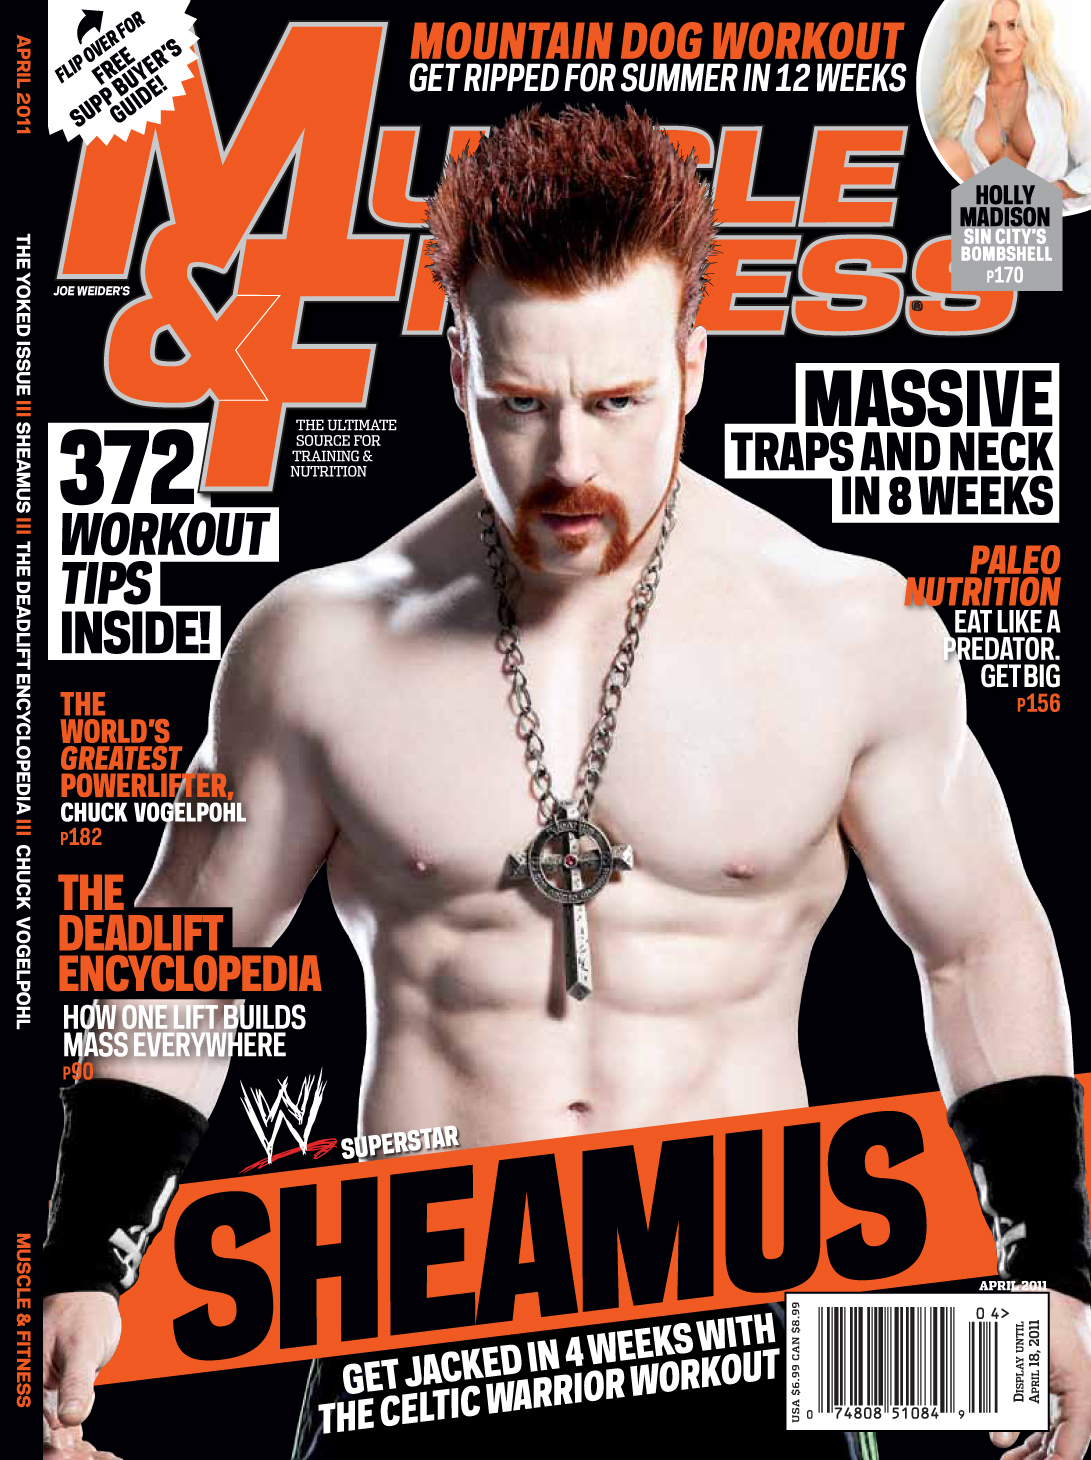 web_Muscle_Fitness_sheamus_April.jpg